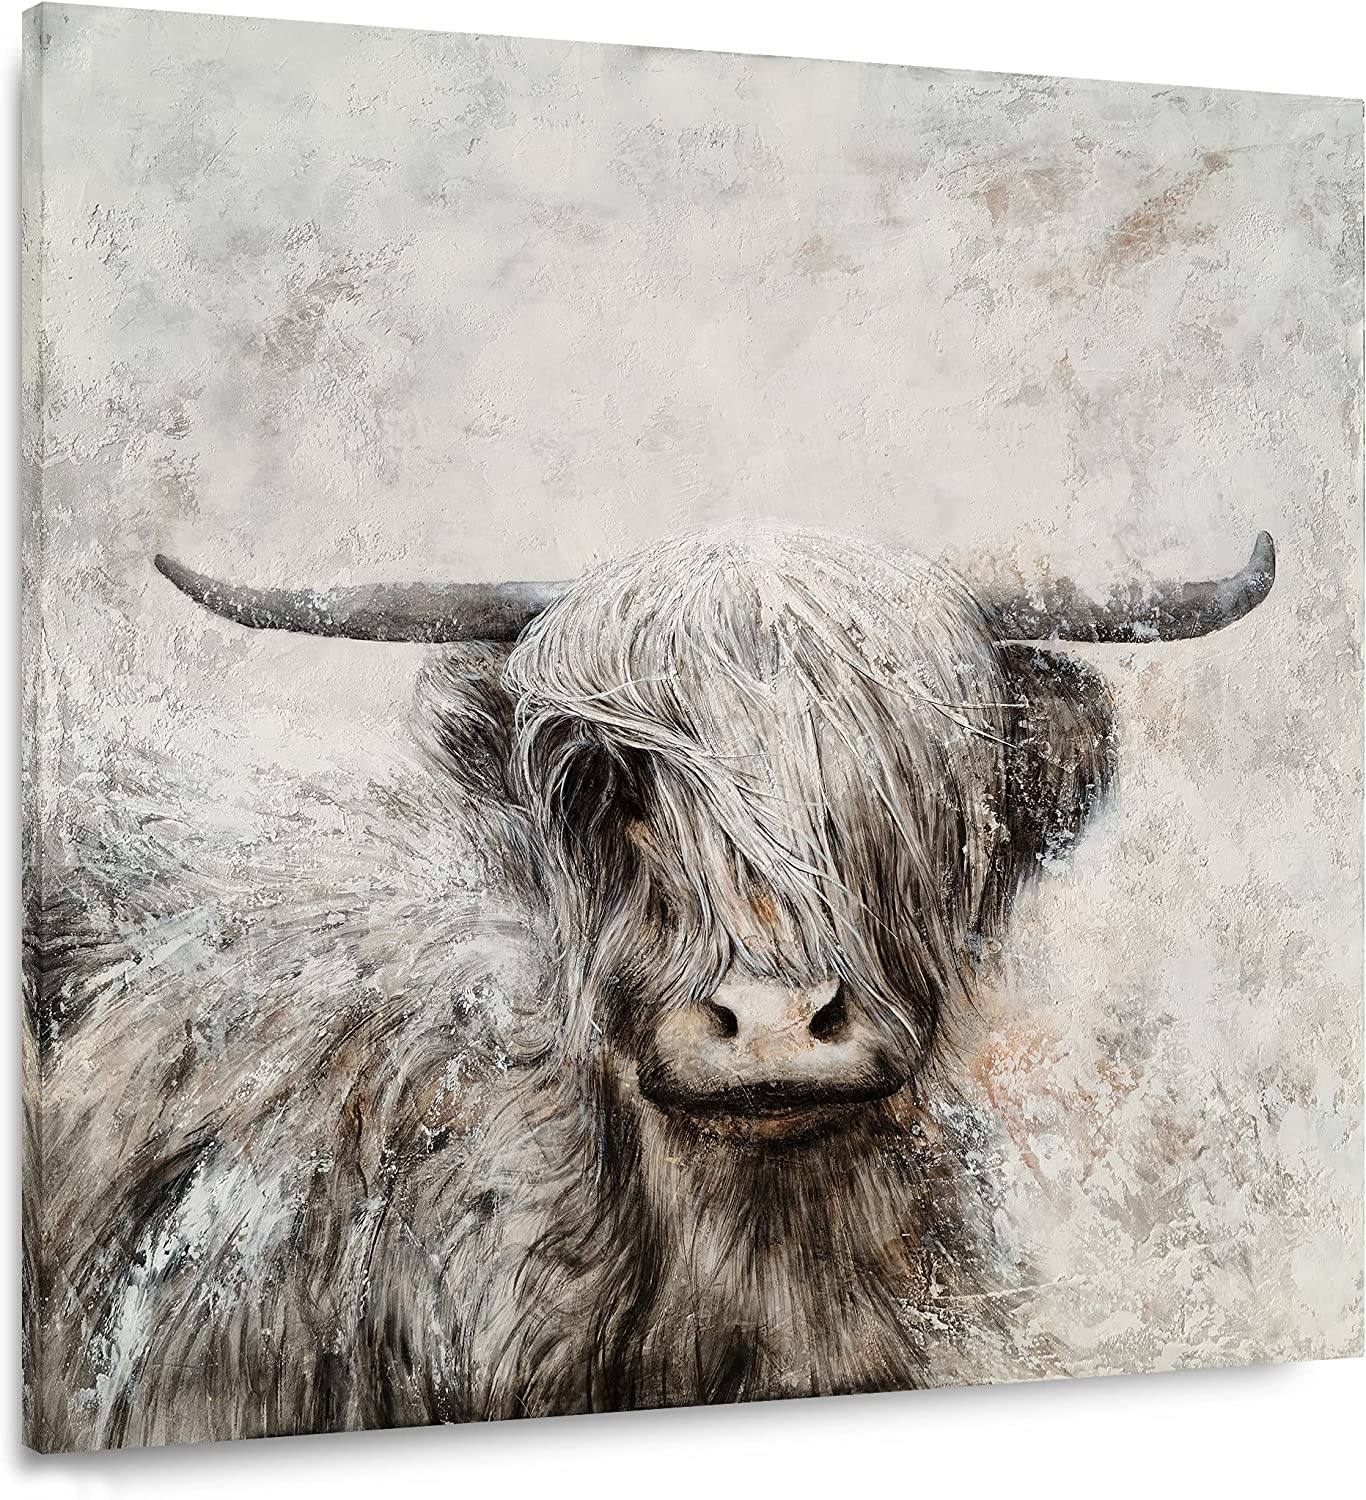 Yihui Arts Max 72% Manufacturer regenerated product OFF Highland Cow Canvas Wall Painted Art Hand Lovely Wild